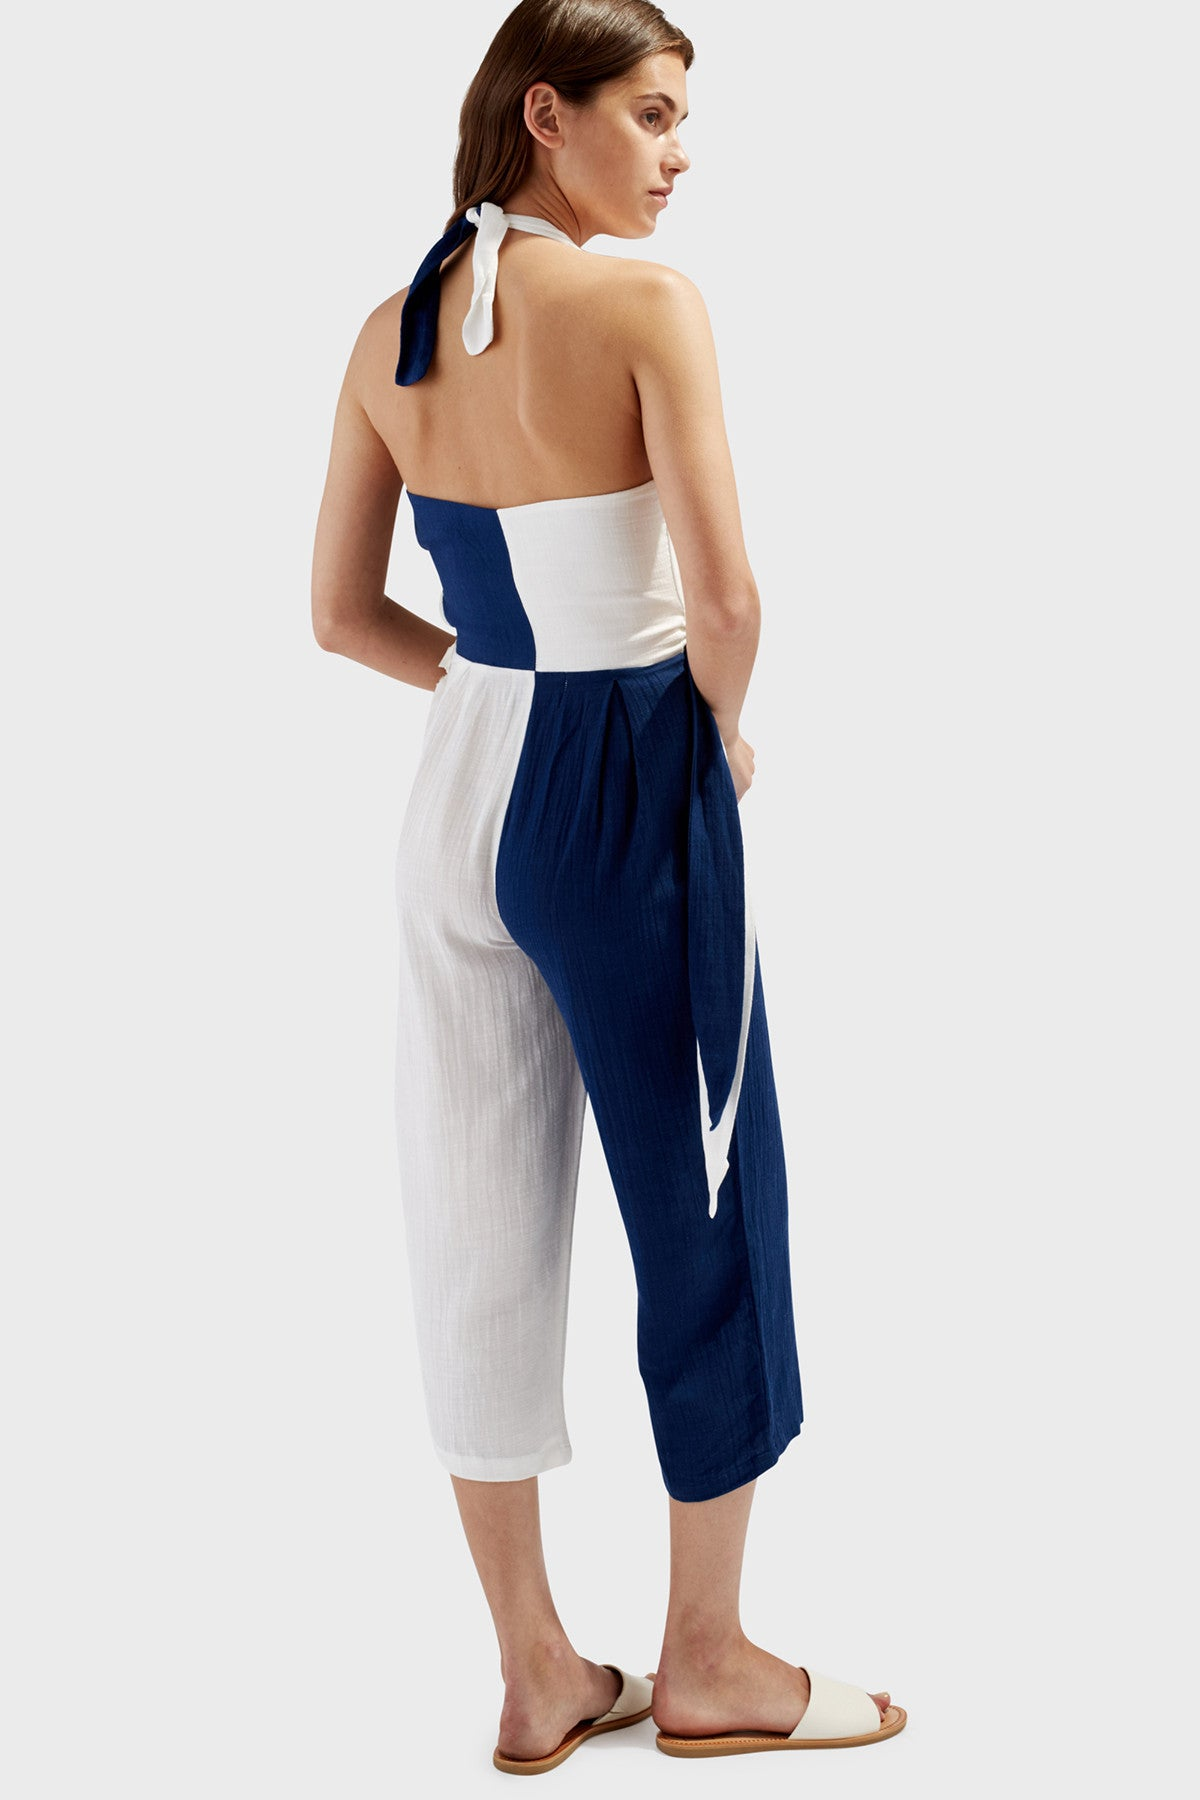 The Camille Jumpsuit - Solid & Striped